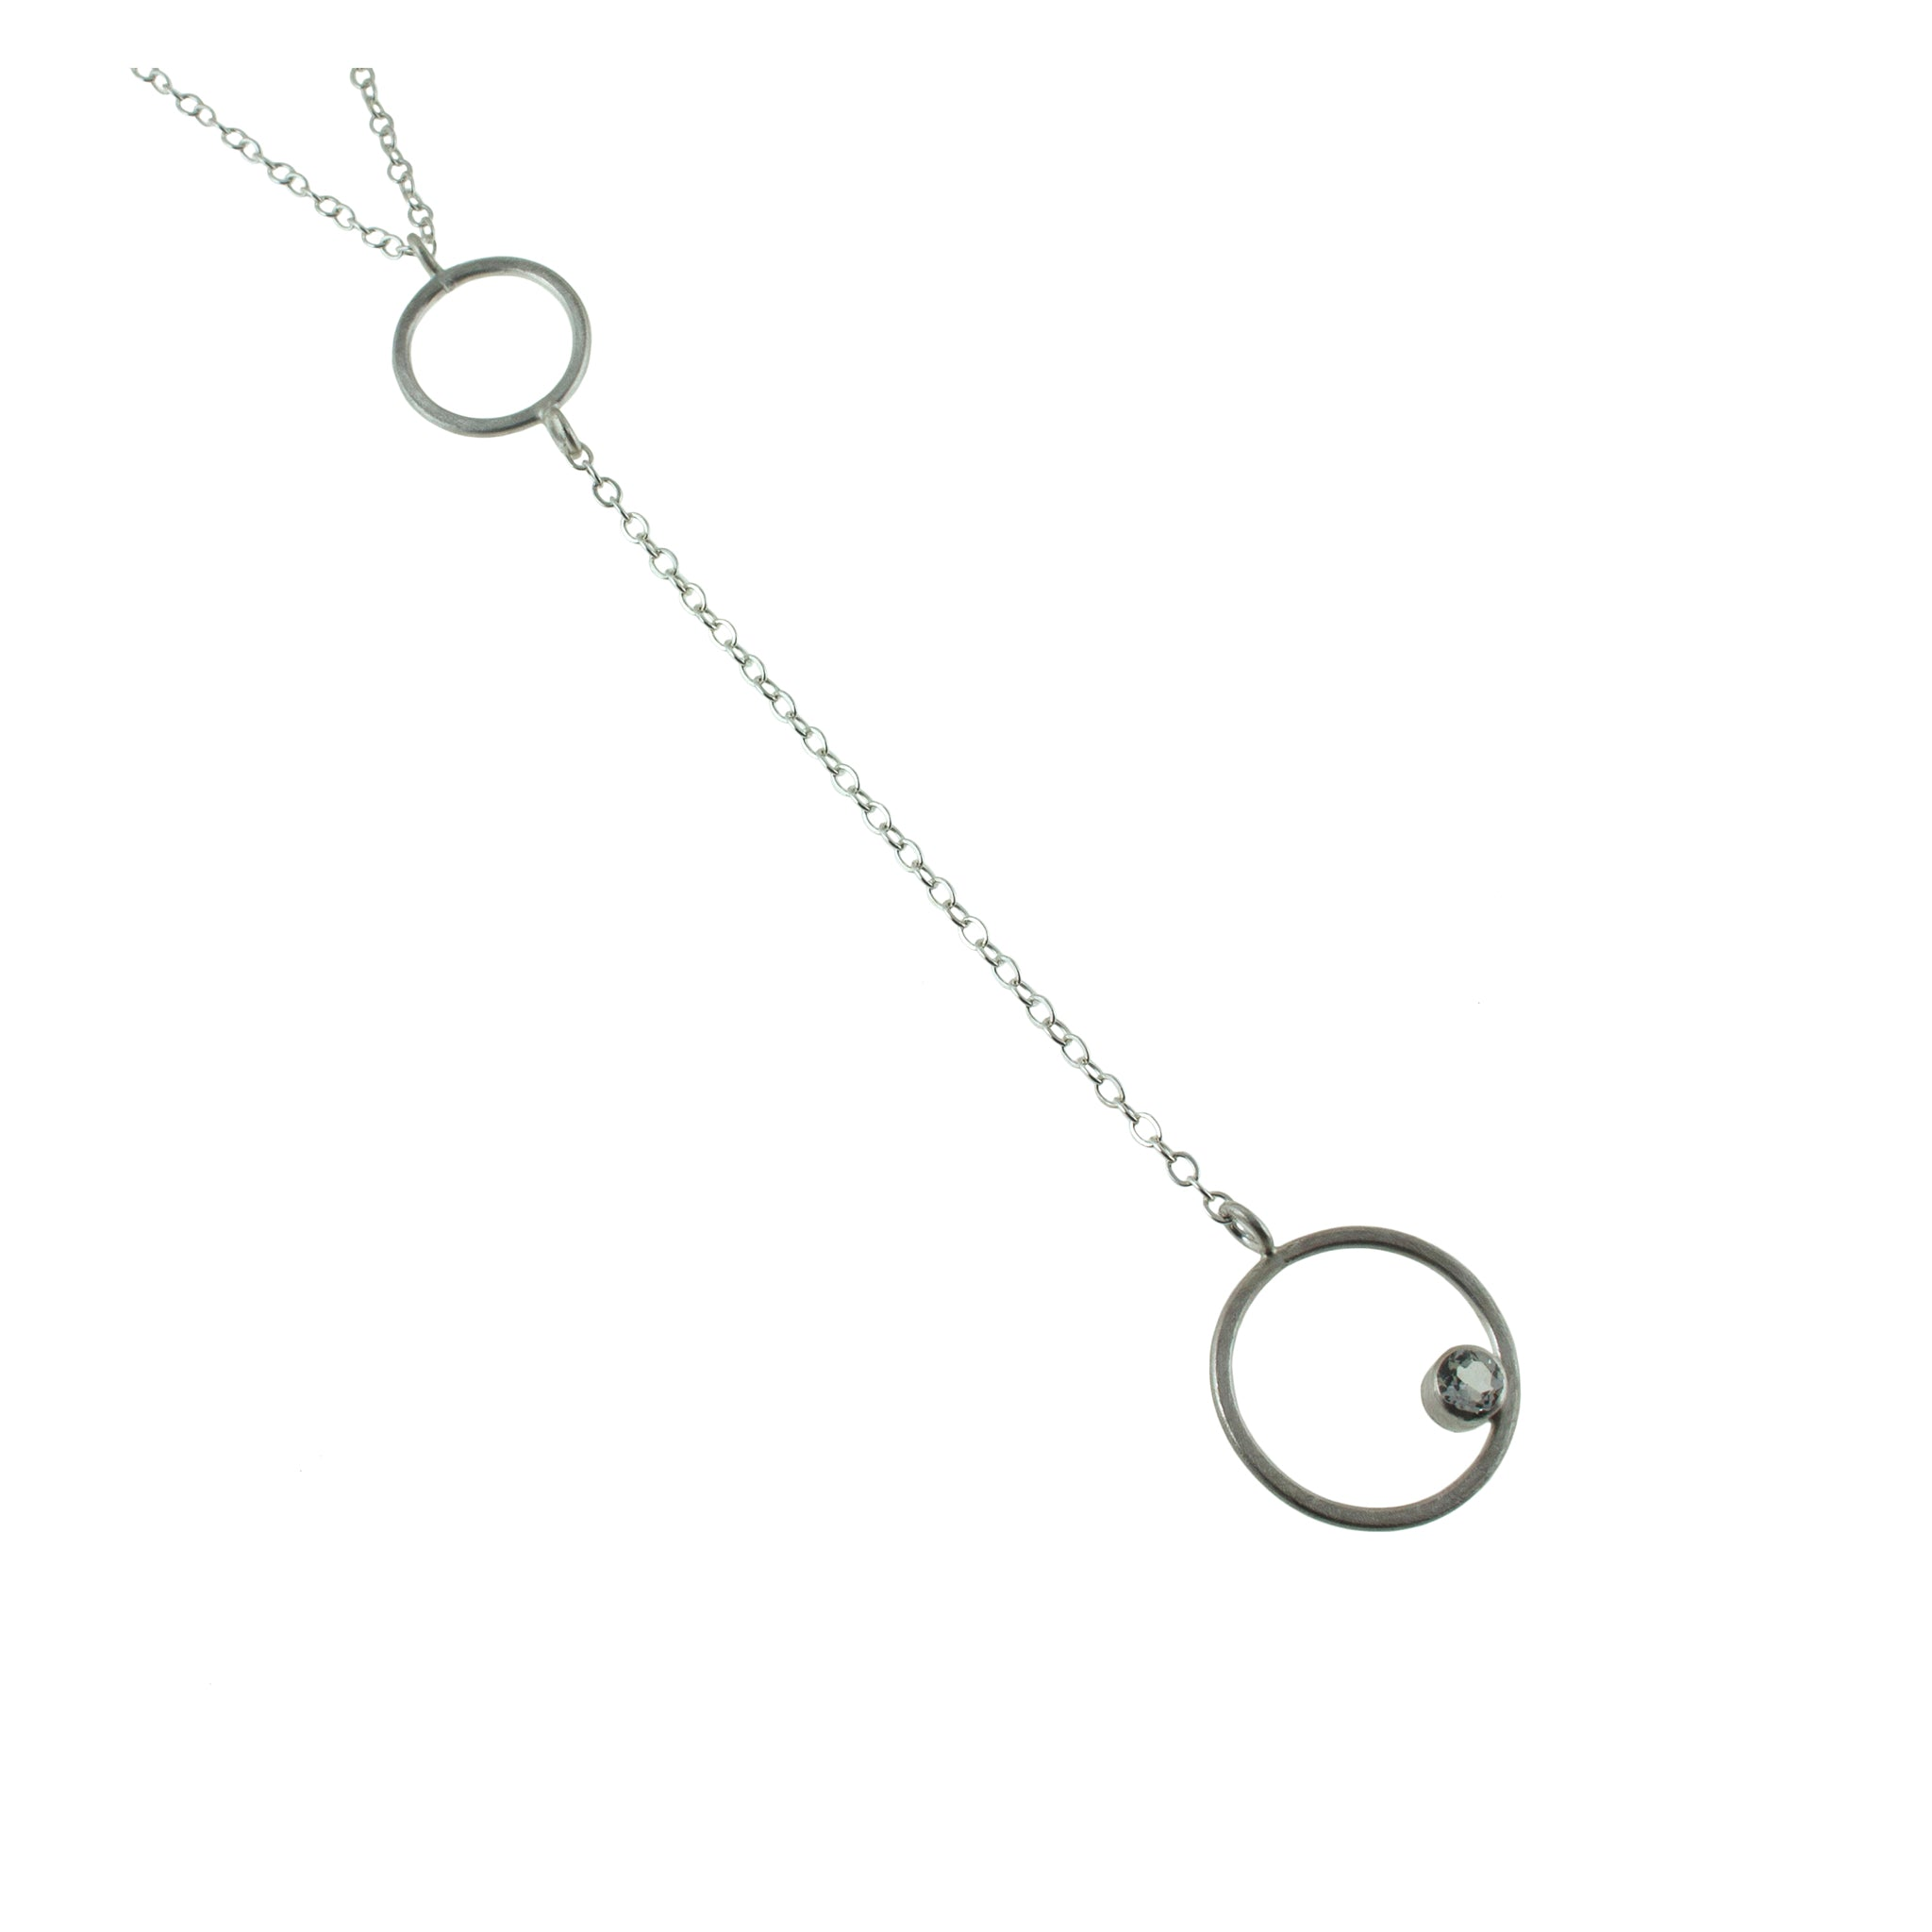 Sterling silver lariat necklace with gemstone by eko jewelry design, Bijou